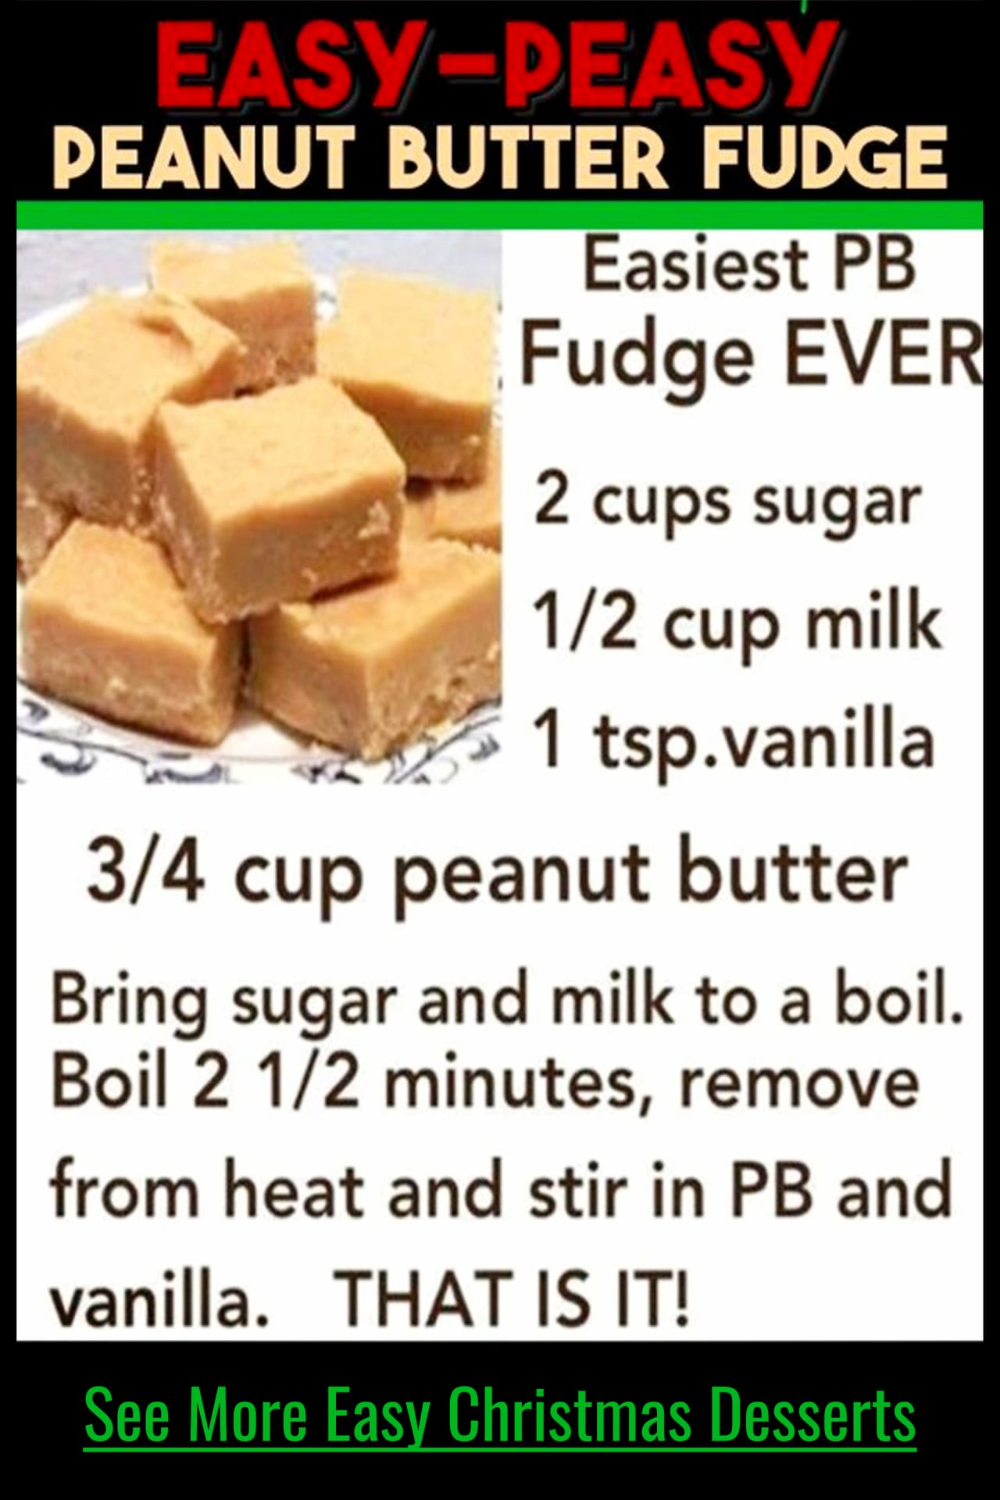 Fudge Recipes Best Easy 3 Ingredient Fudge Recipes Quick Sweet Treats For Any Holiday Party Crowd In 2020 Peanut Butter Fudge Recipes Easy Easy Fudge Recipe Without Condensed Milk Easy Homemade Desserts